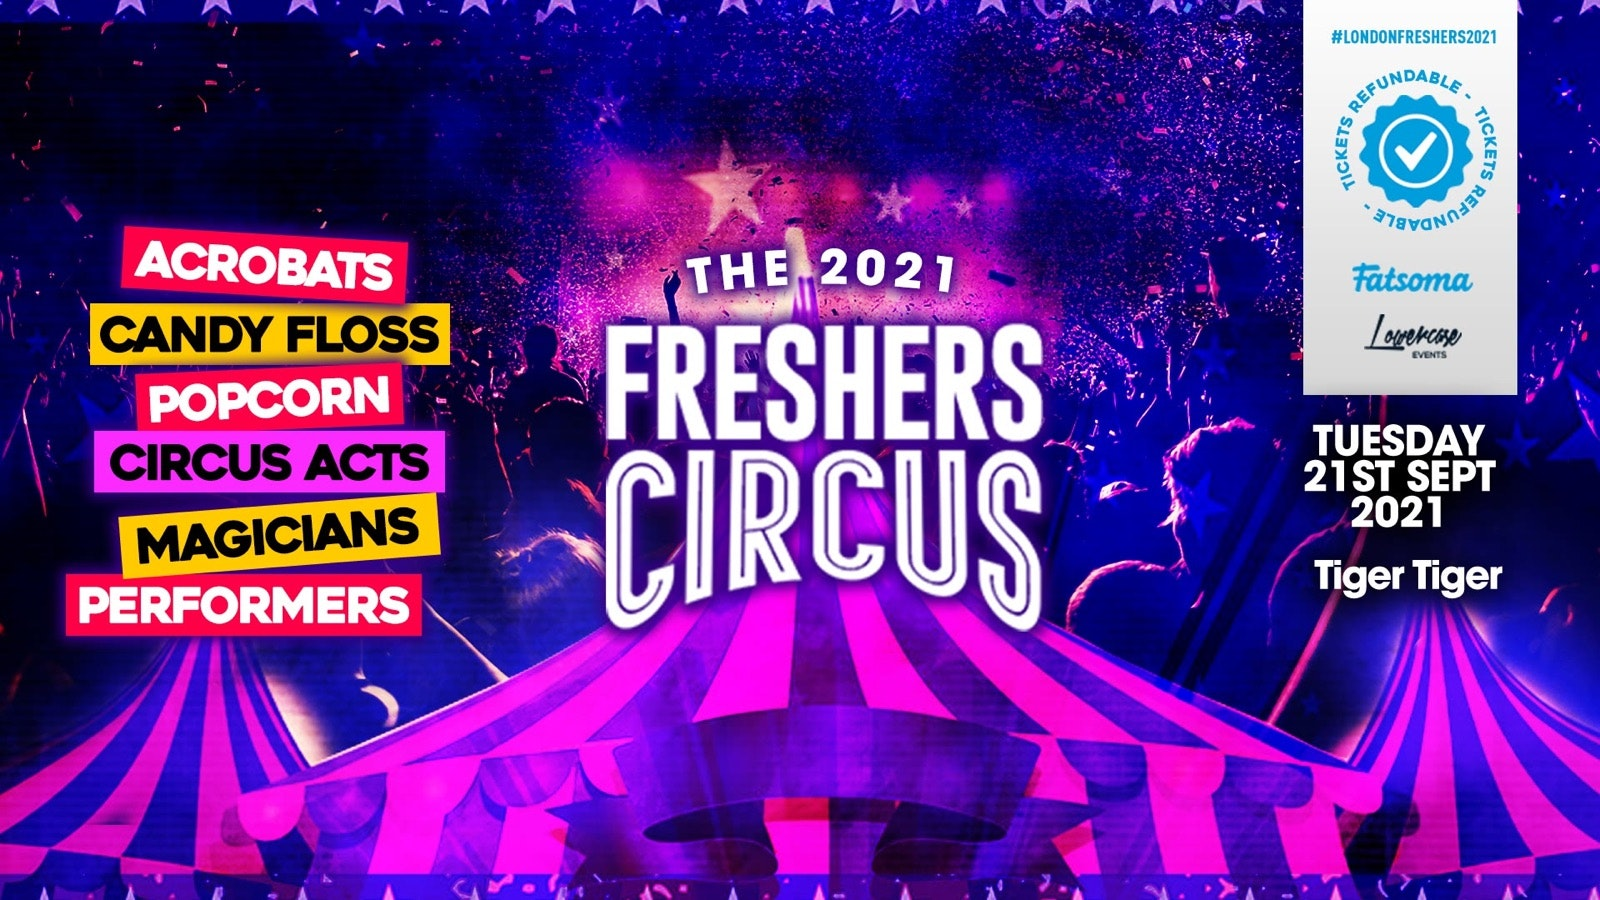 THE 2021 LONDON FRESHERS CIRCUS AT TIGER TIGER LONDON // FRESHERS WEEK 1 DAY 3